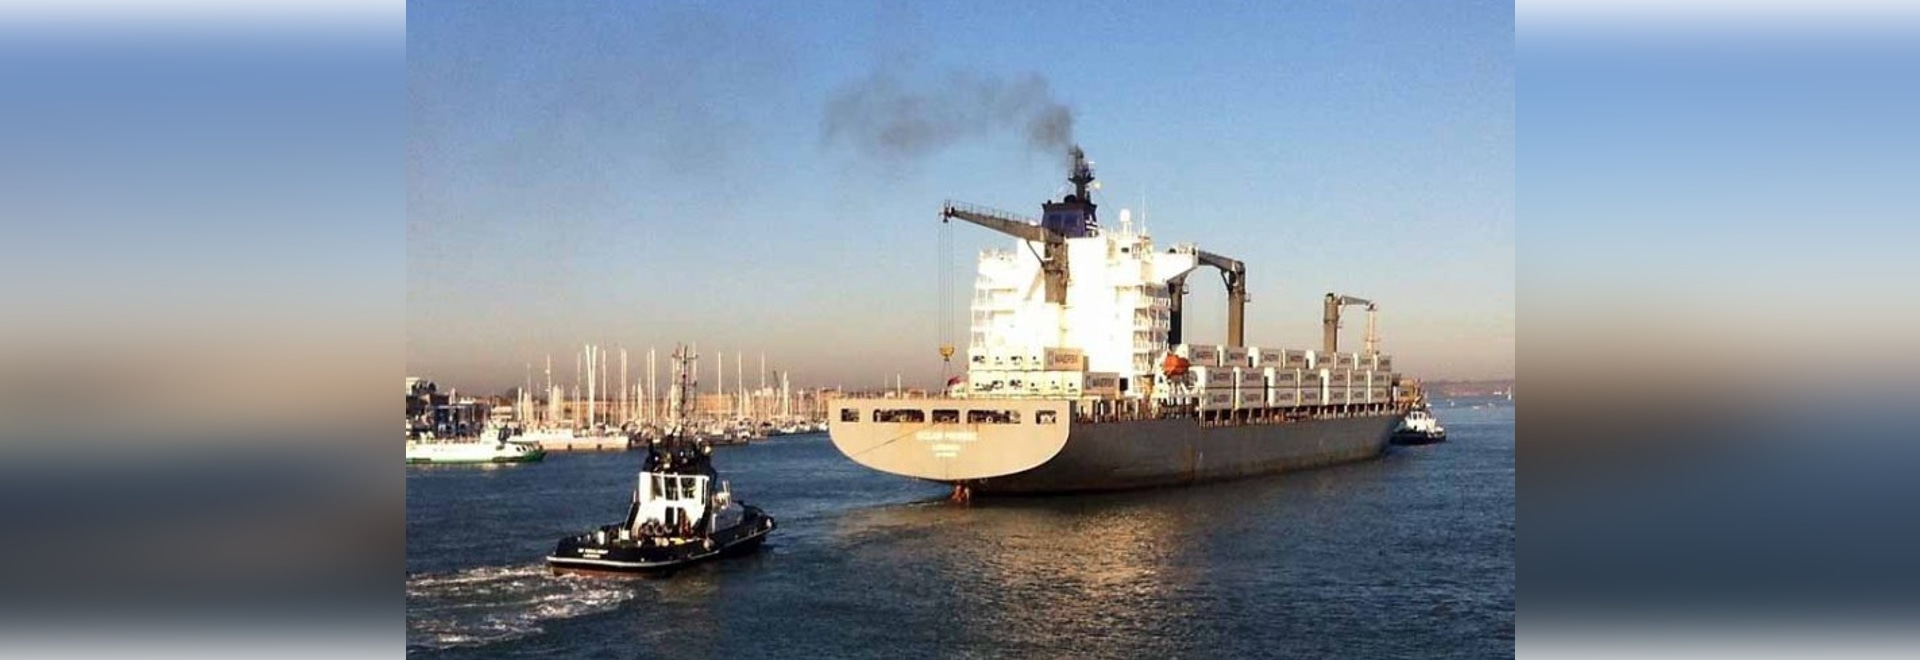 BIGGEST MERCHANT SHIP TO VISIT PORTSMOUTH